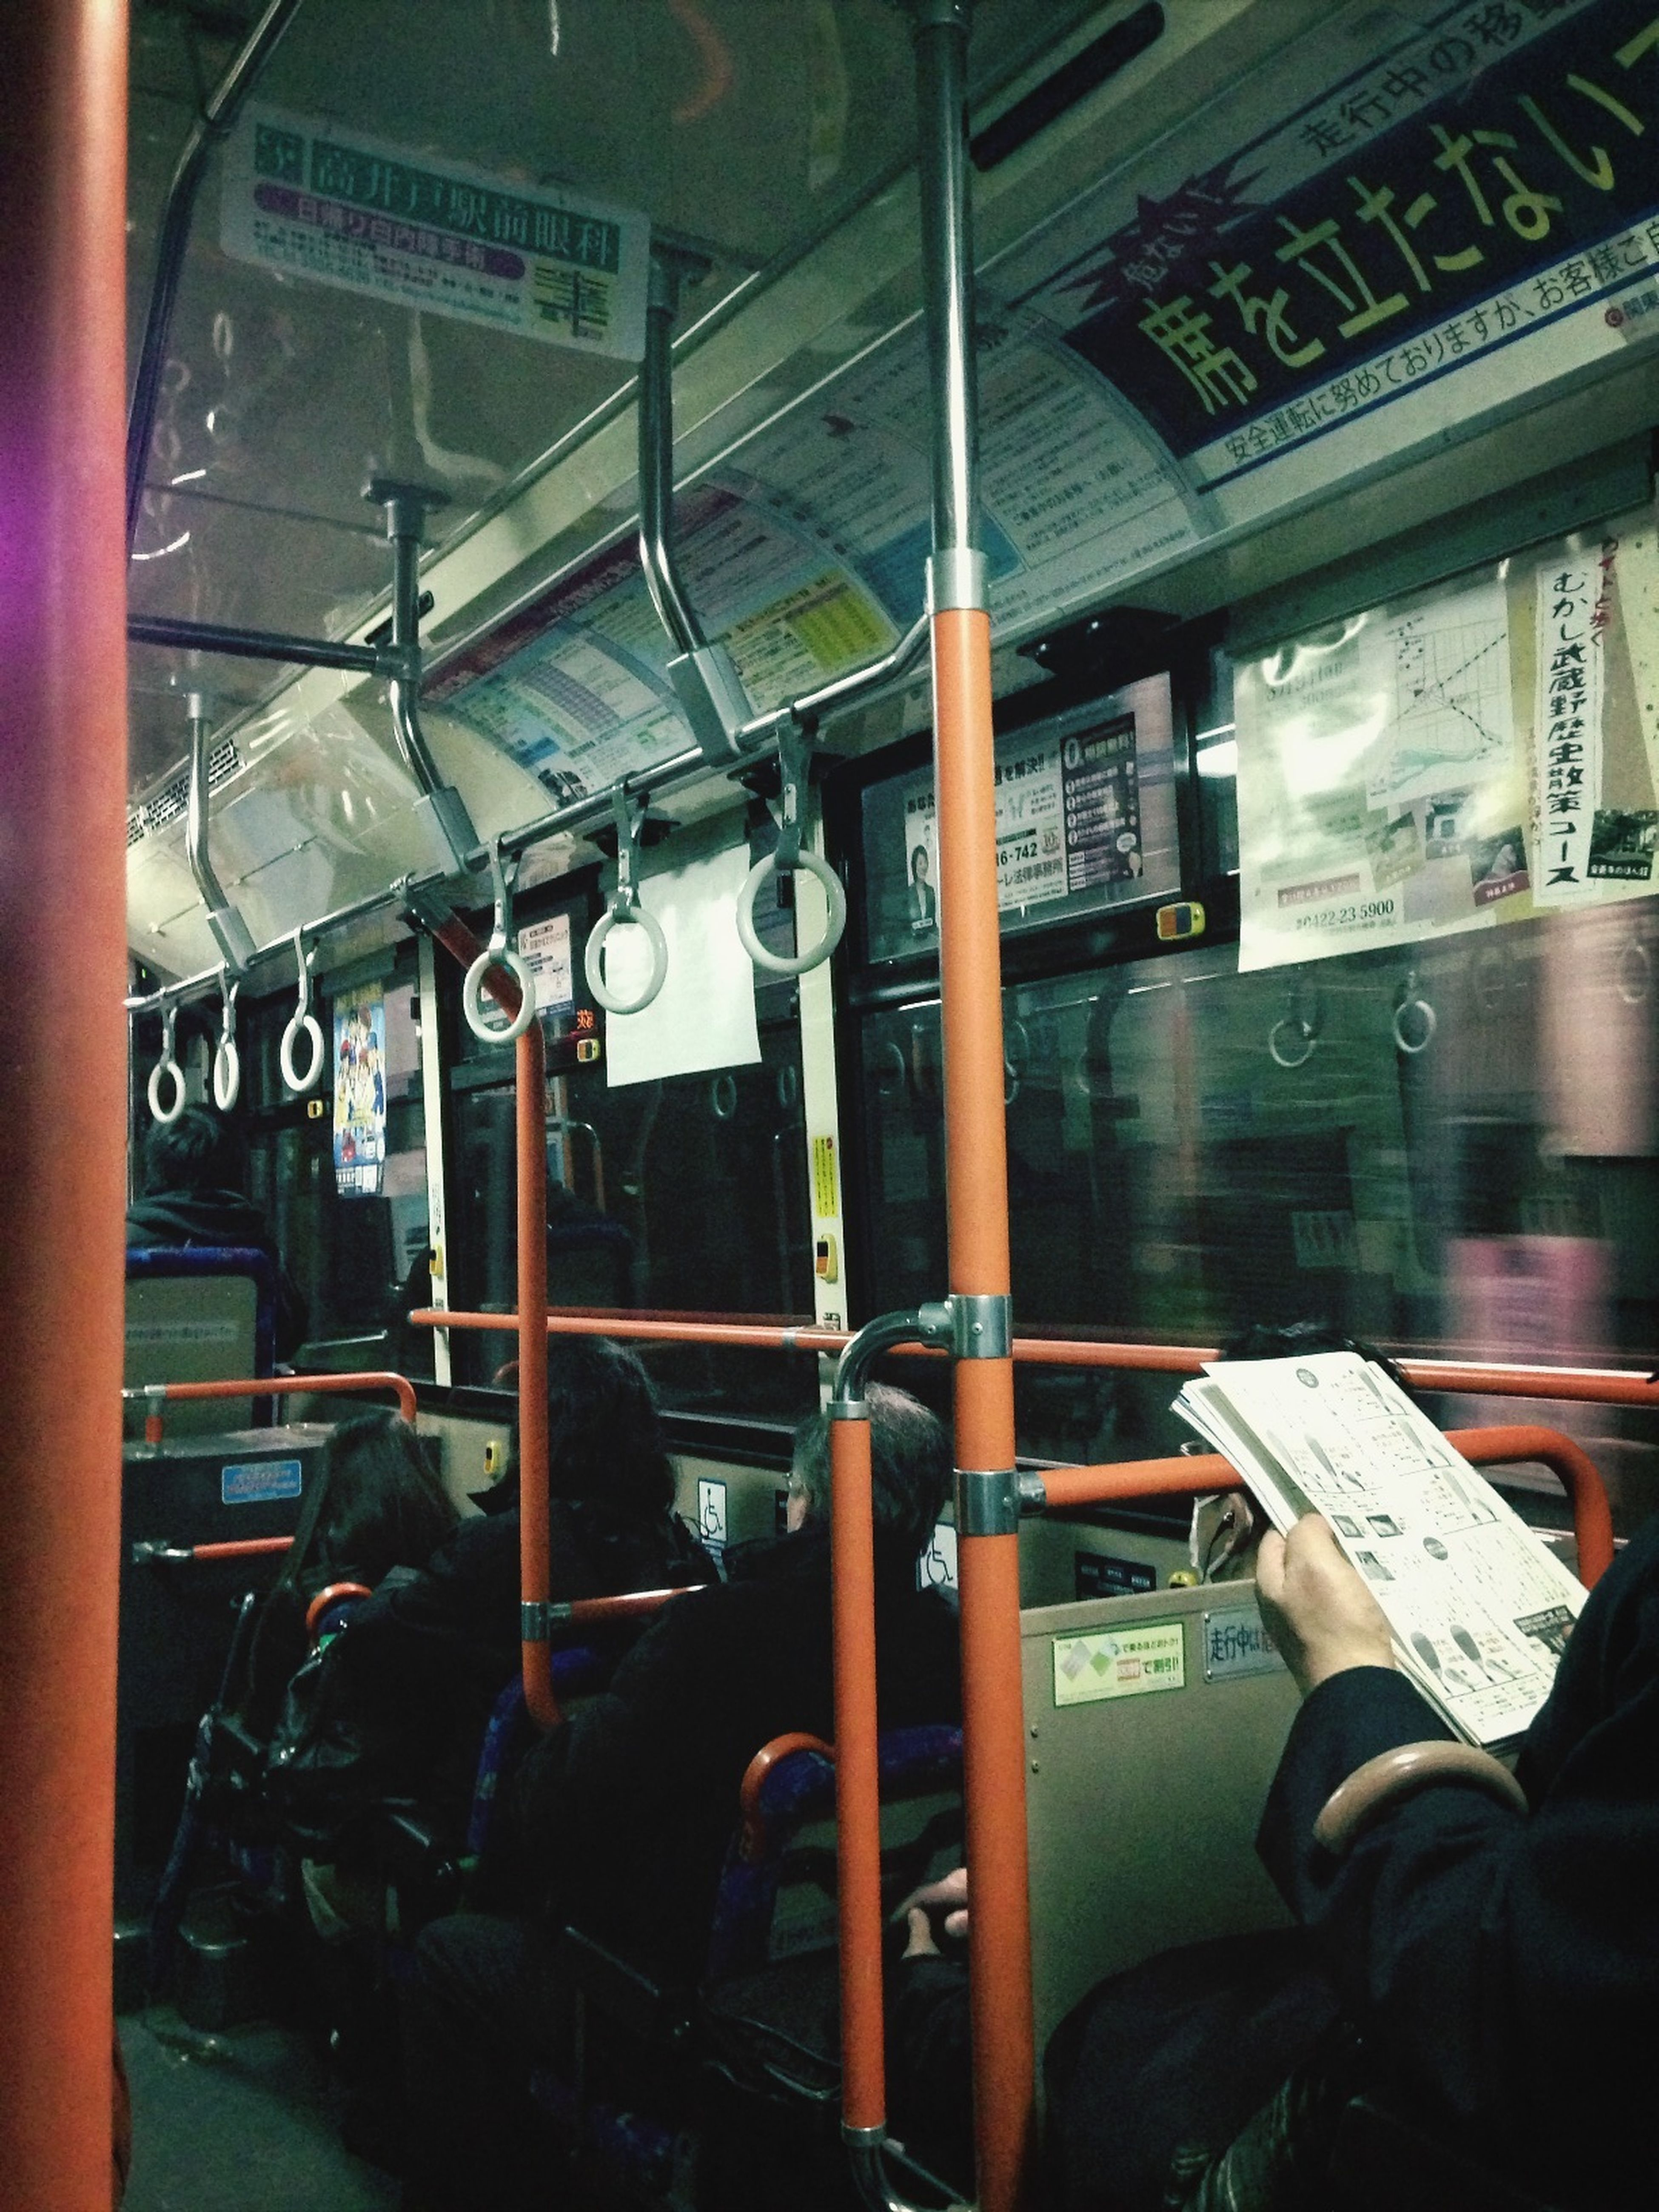 In the bus .